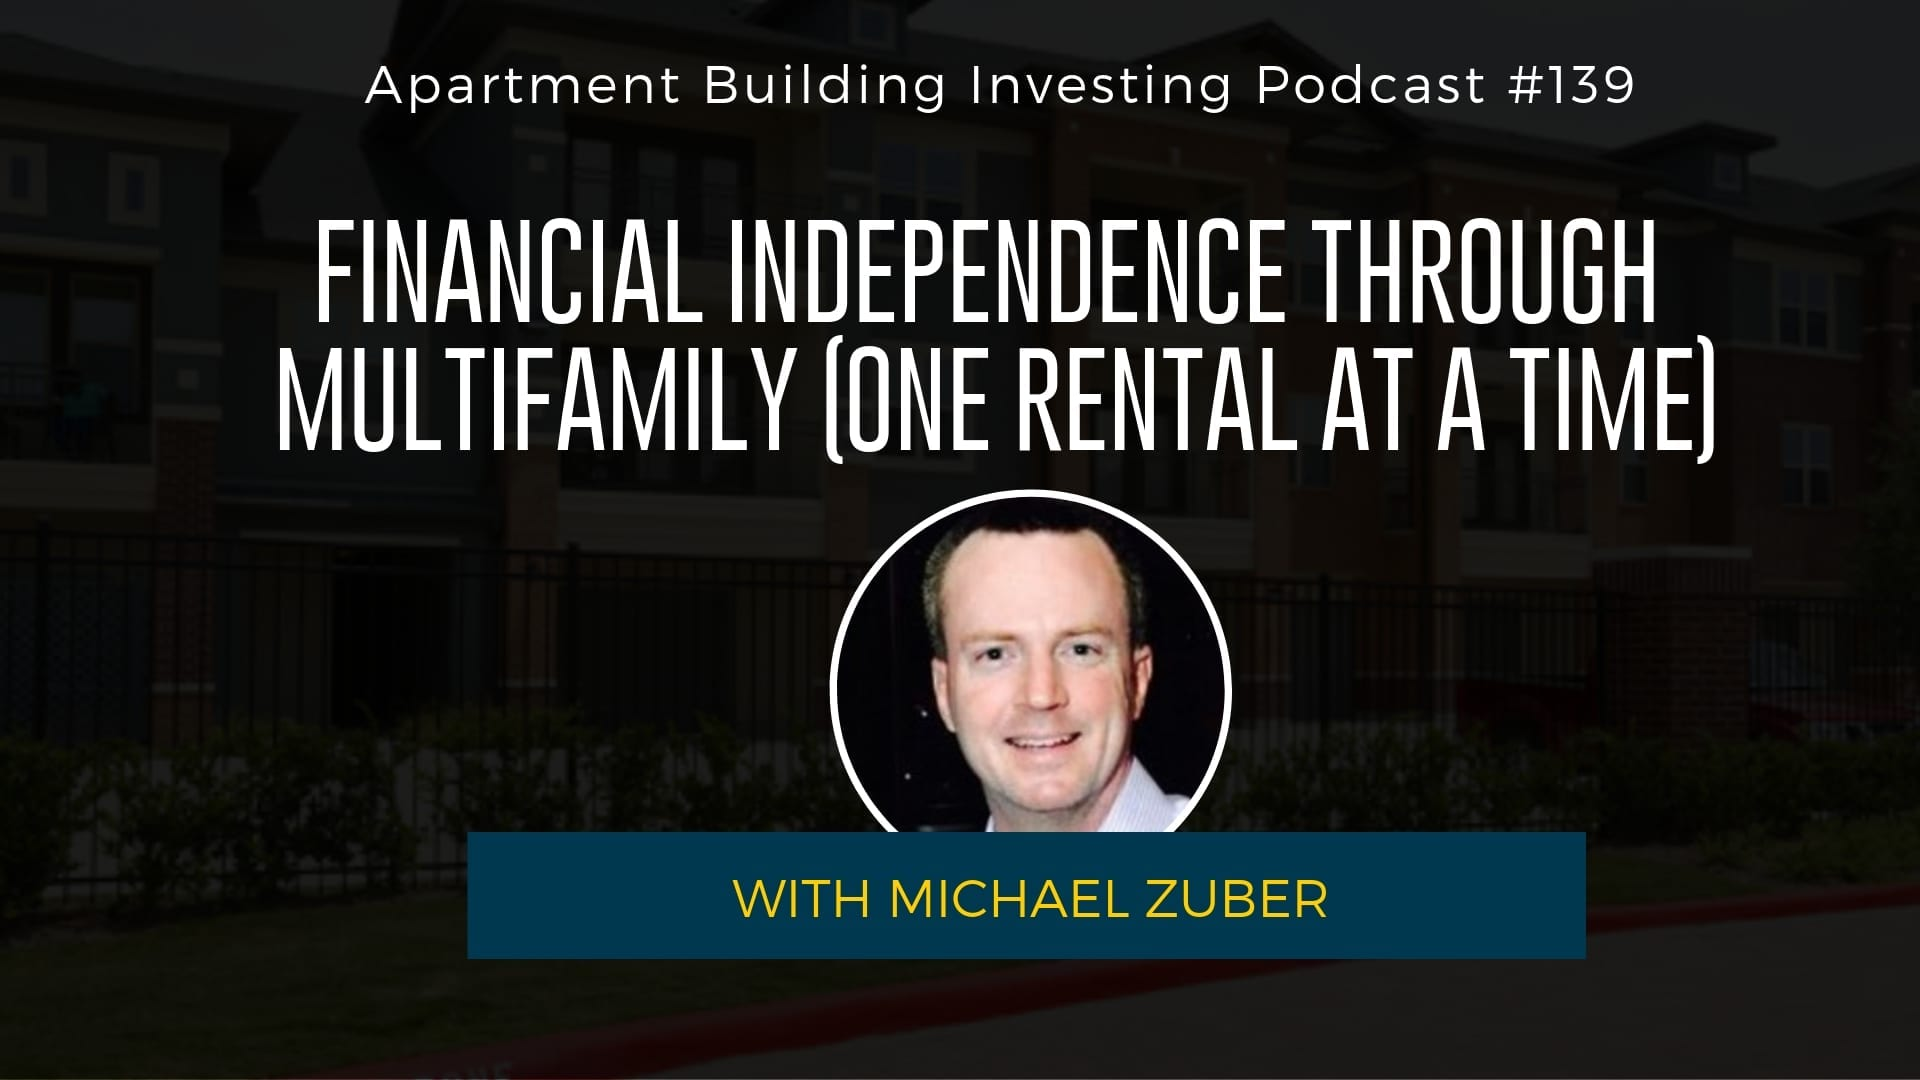 MB 139: Financial Independence Through Multifamily (One Rental at a Time) – With Michael Zuber